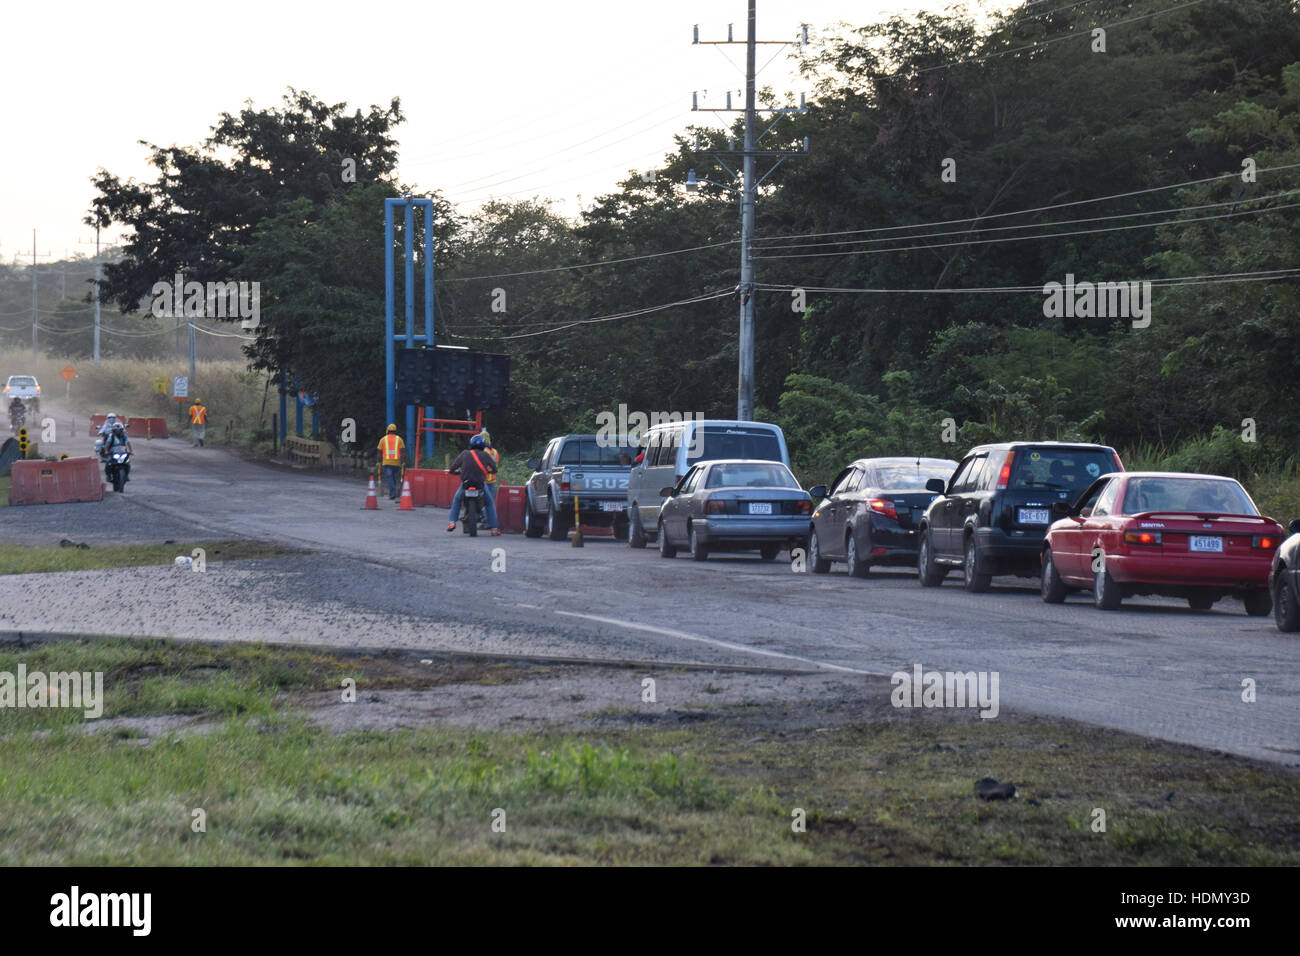 Traffic queue for roadworks on the main road to Liberia, Costa Rica - Stock Image